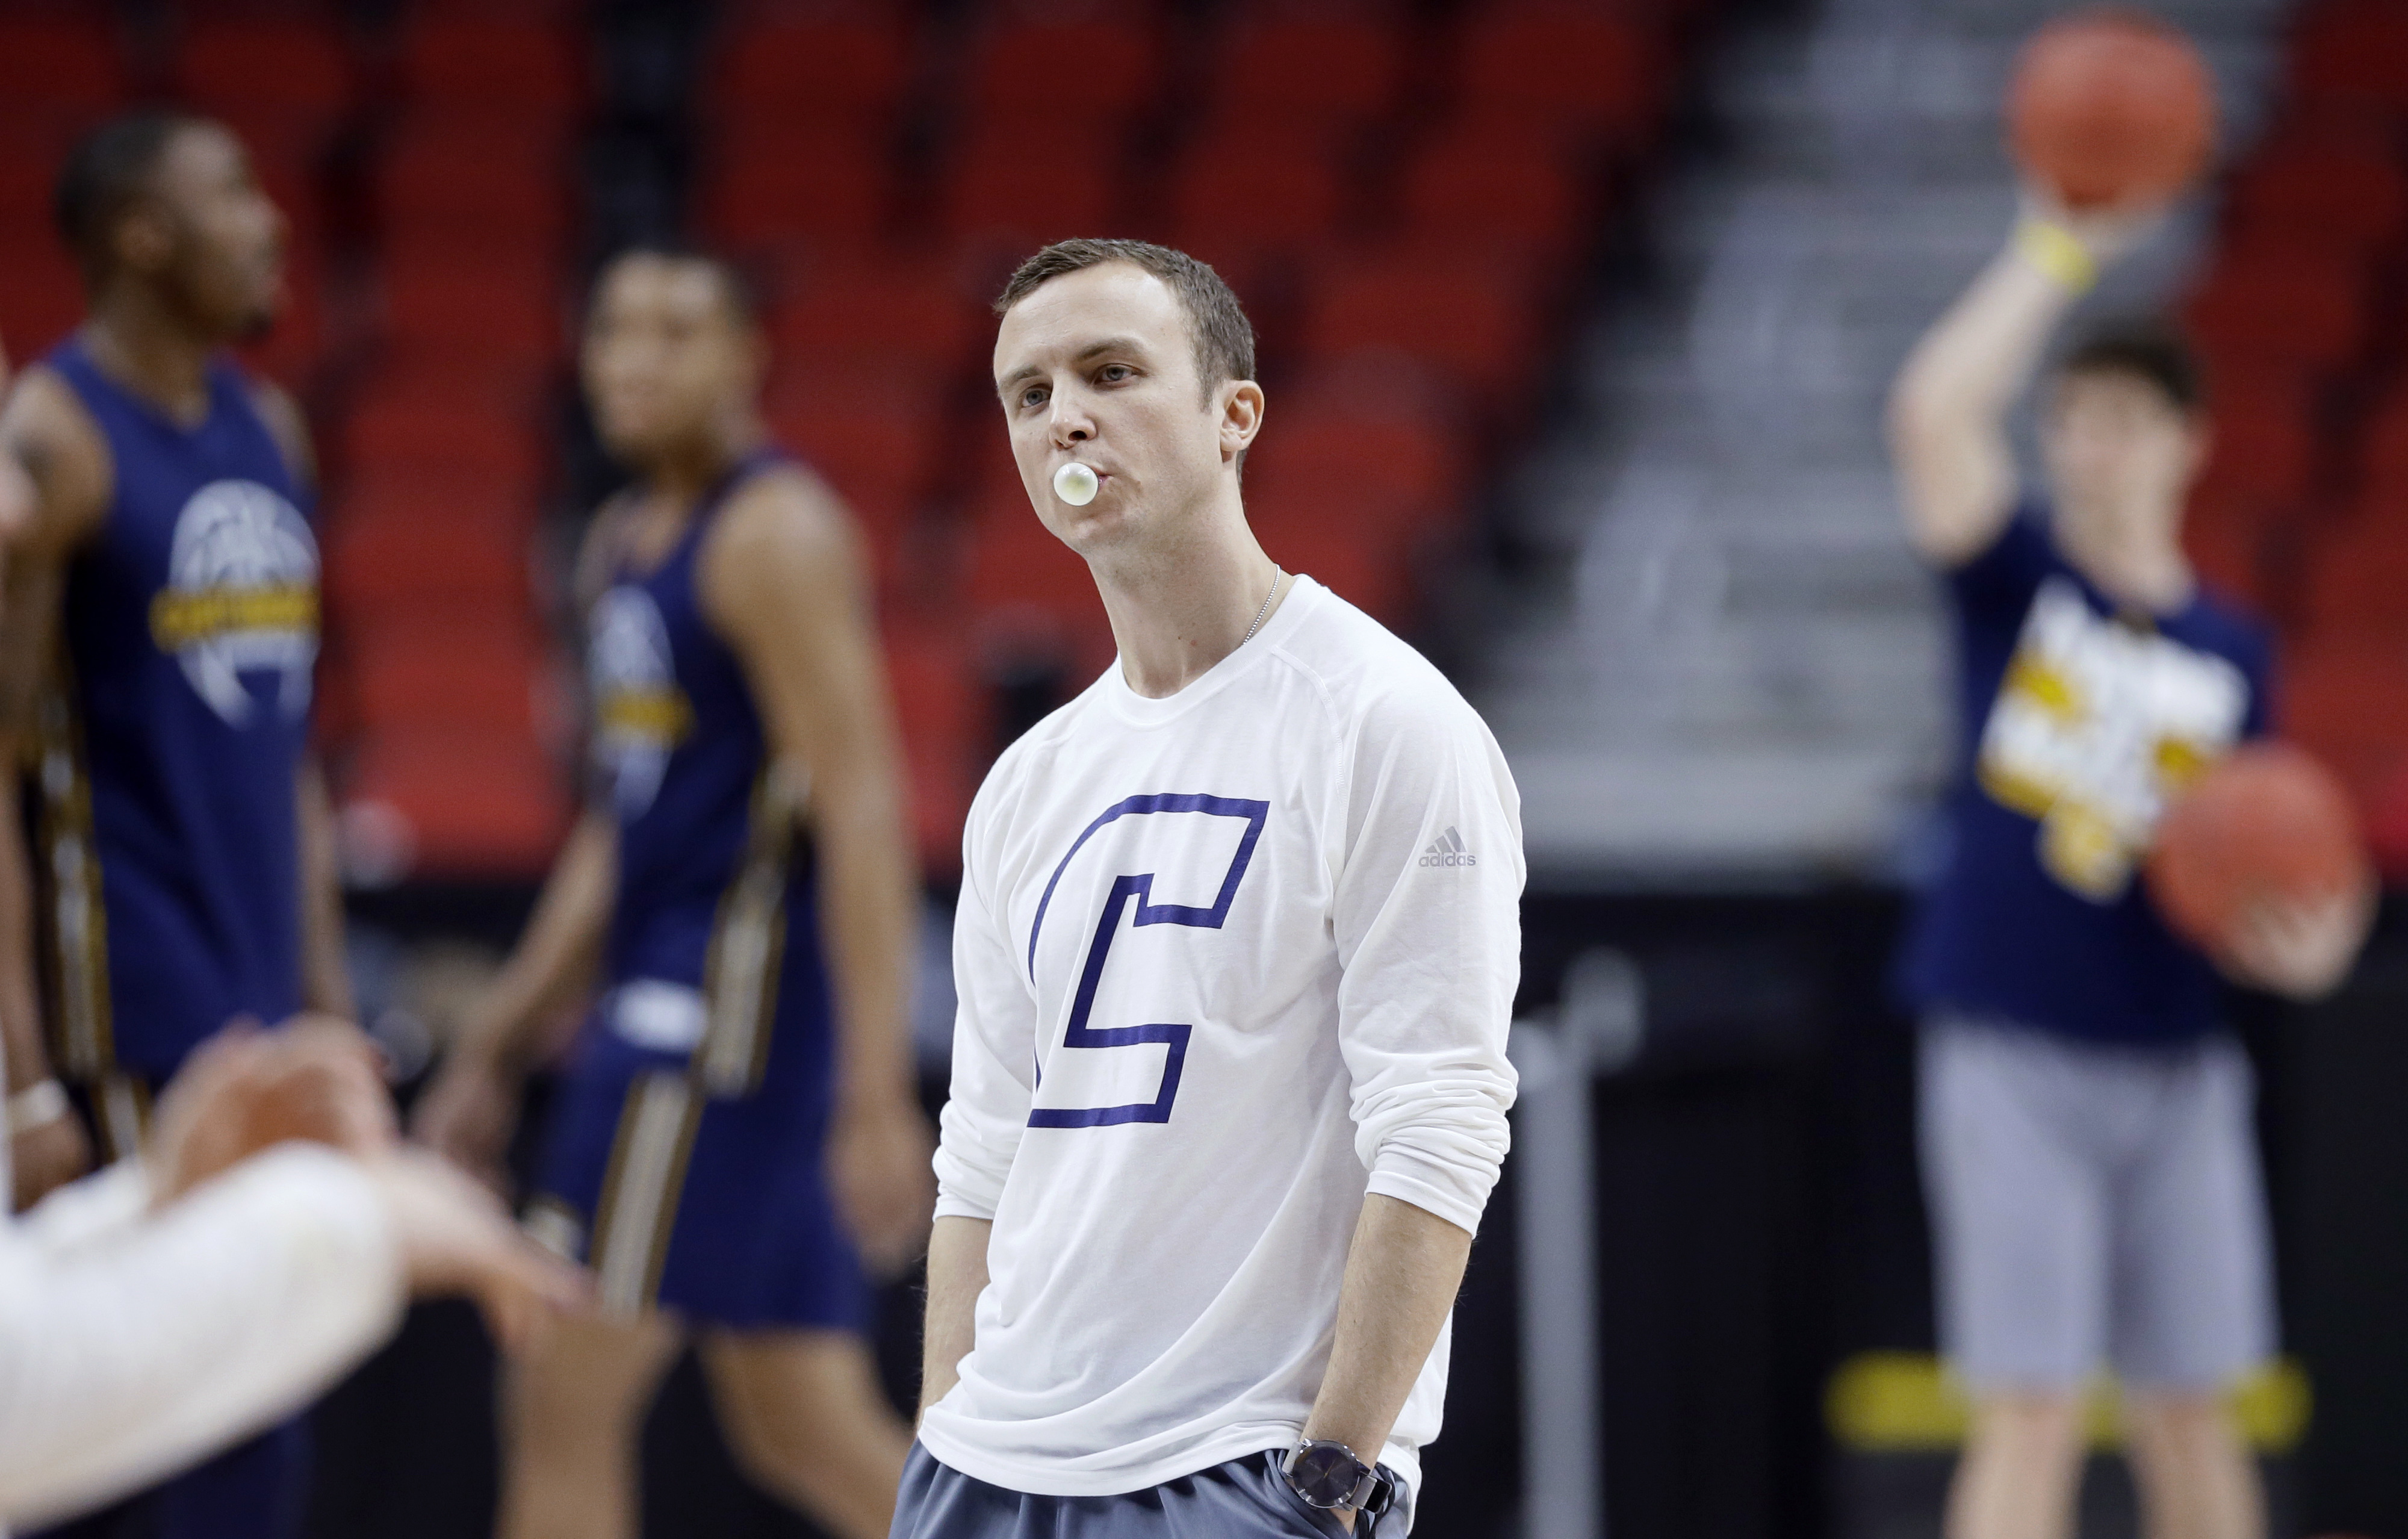 Chattanooga coach Matt McCall watches his team during practice for a first-round men's college basketball game in the NCAA Tournament, Wednesday, March 16, 2016, in Des Moines, Iowa. Chattanooga plays Indiana on Thursday. (AP Photo/Charlie Neibergall)